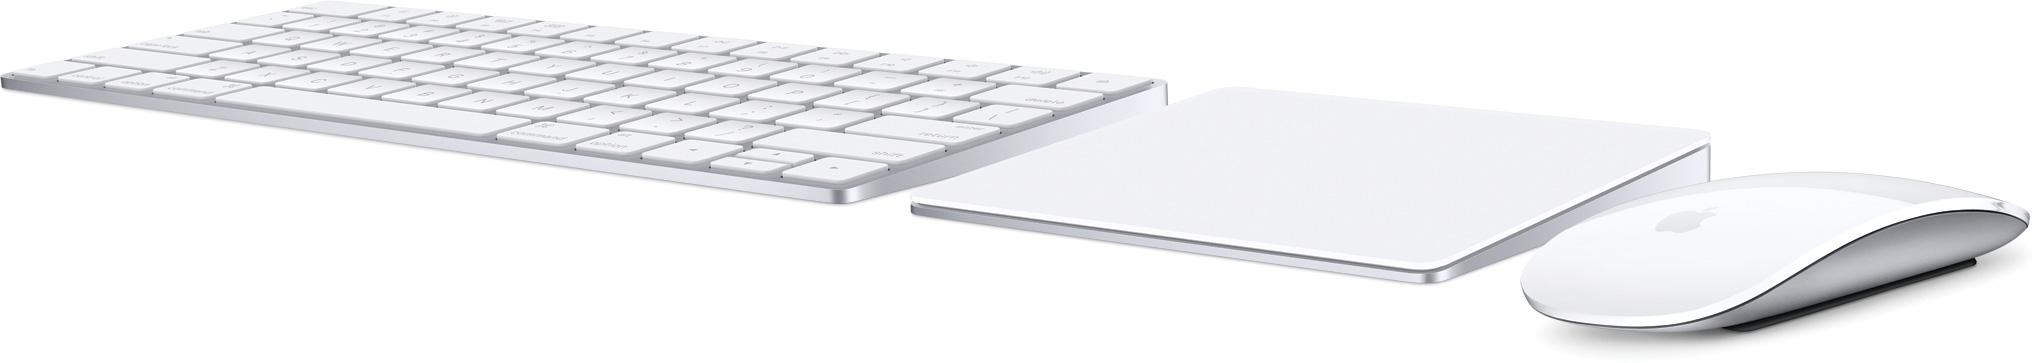 Magic Keyboard, Magic Trackpad 2 e Magic Mouse 2